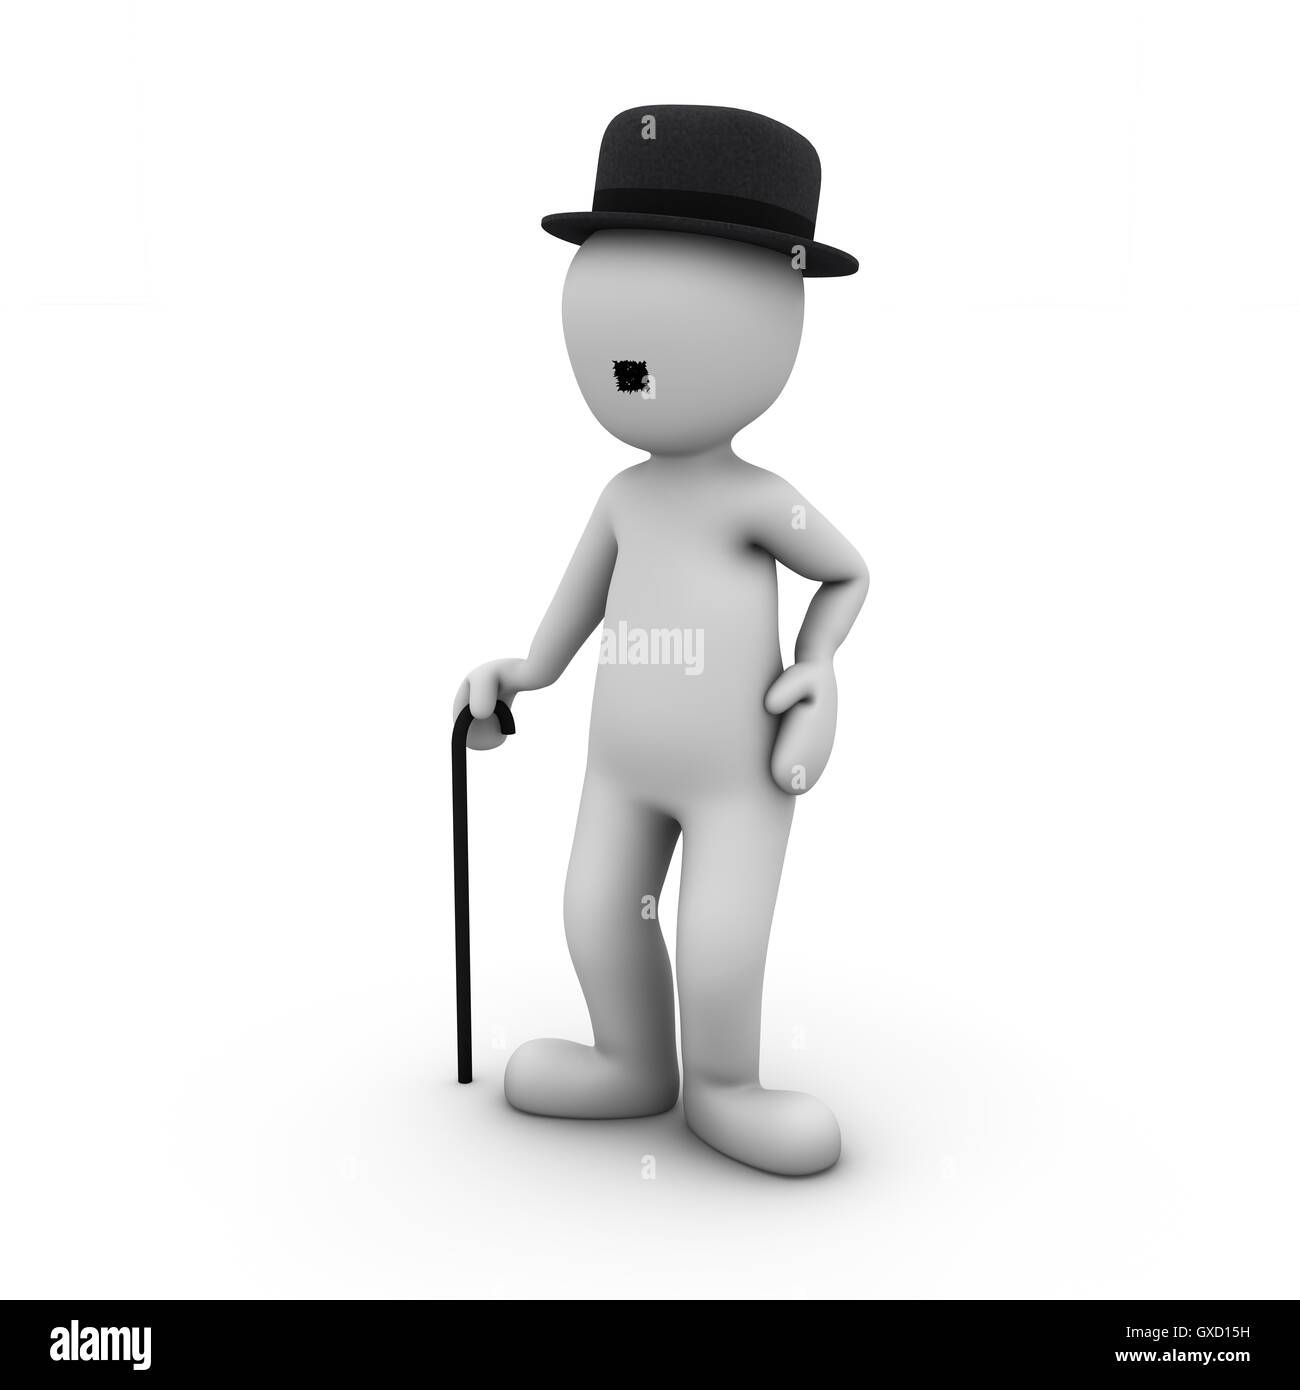 Movie characters 2 - Stock Image